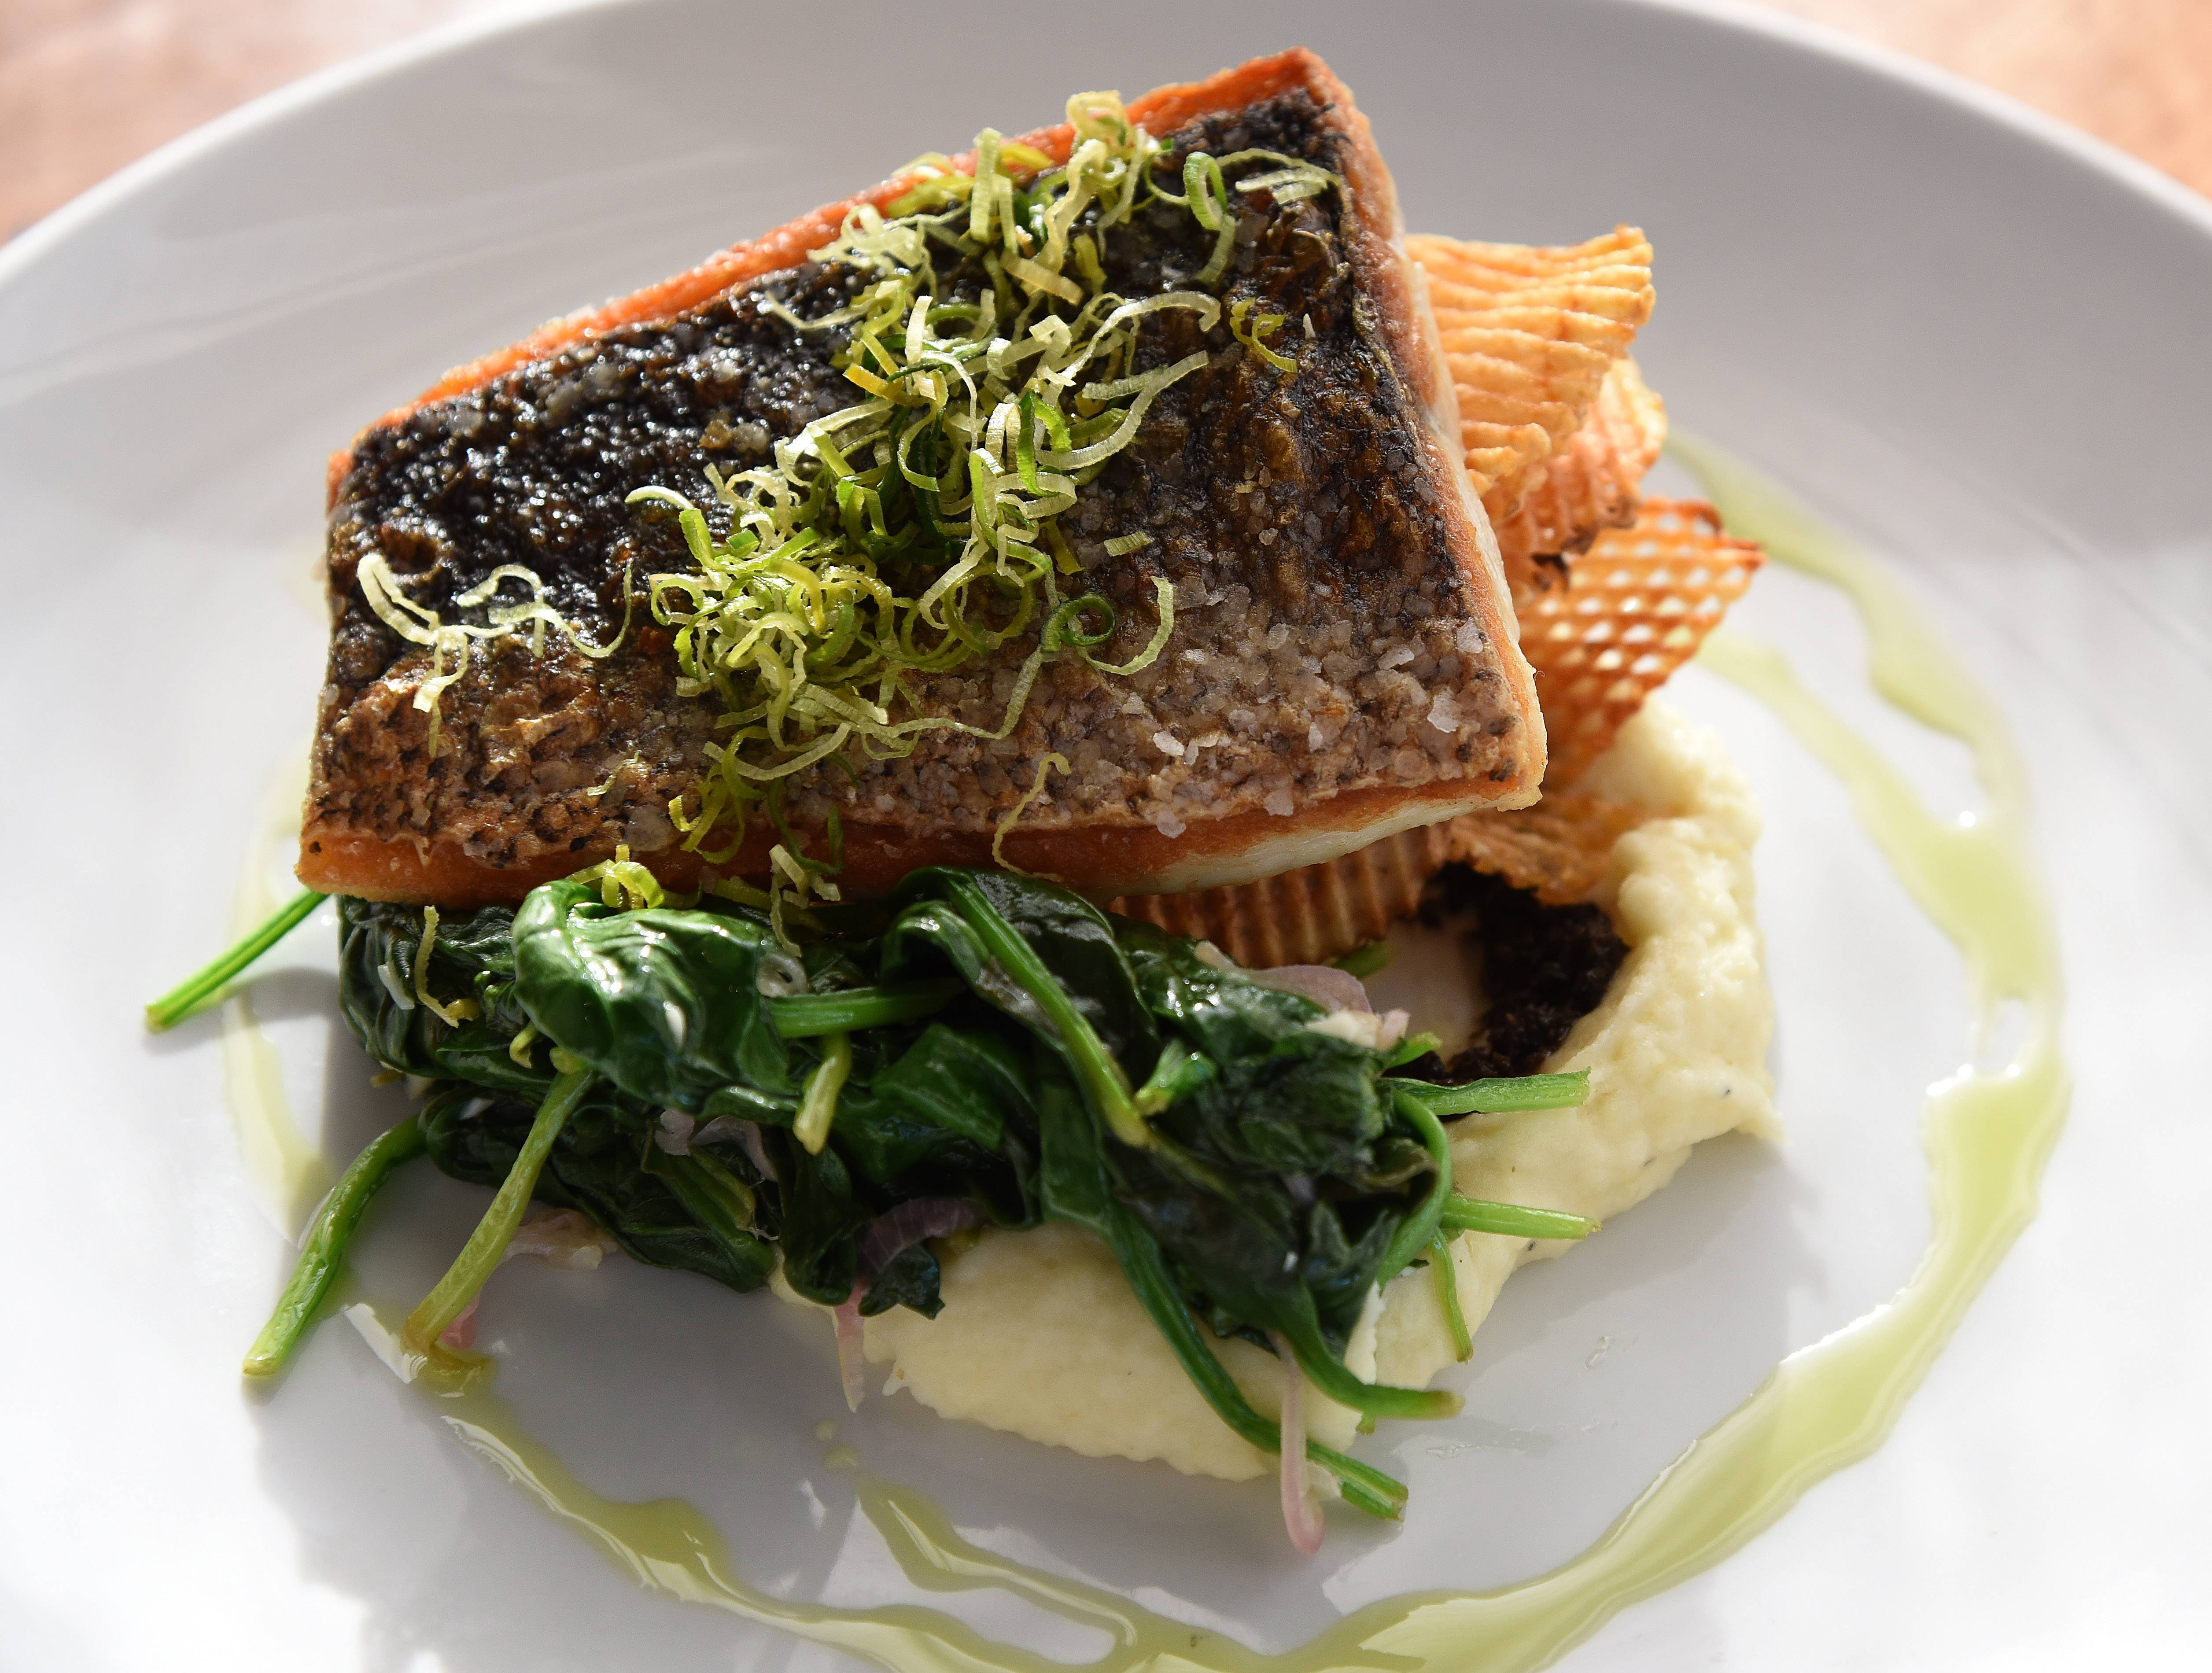 The perfectly seasoned pan-seared black sea bass is accompanied by a leek-potato puree, sauteed spinach and homemade waffle chips at The Finery.